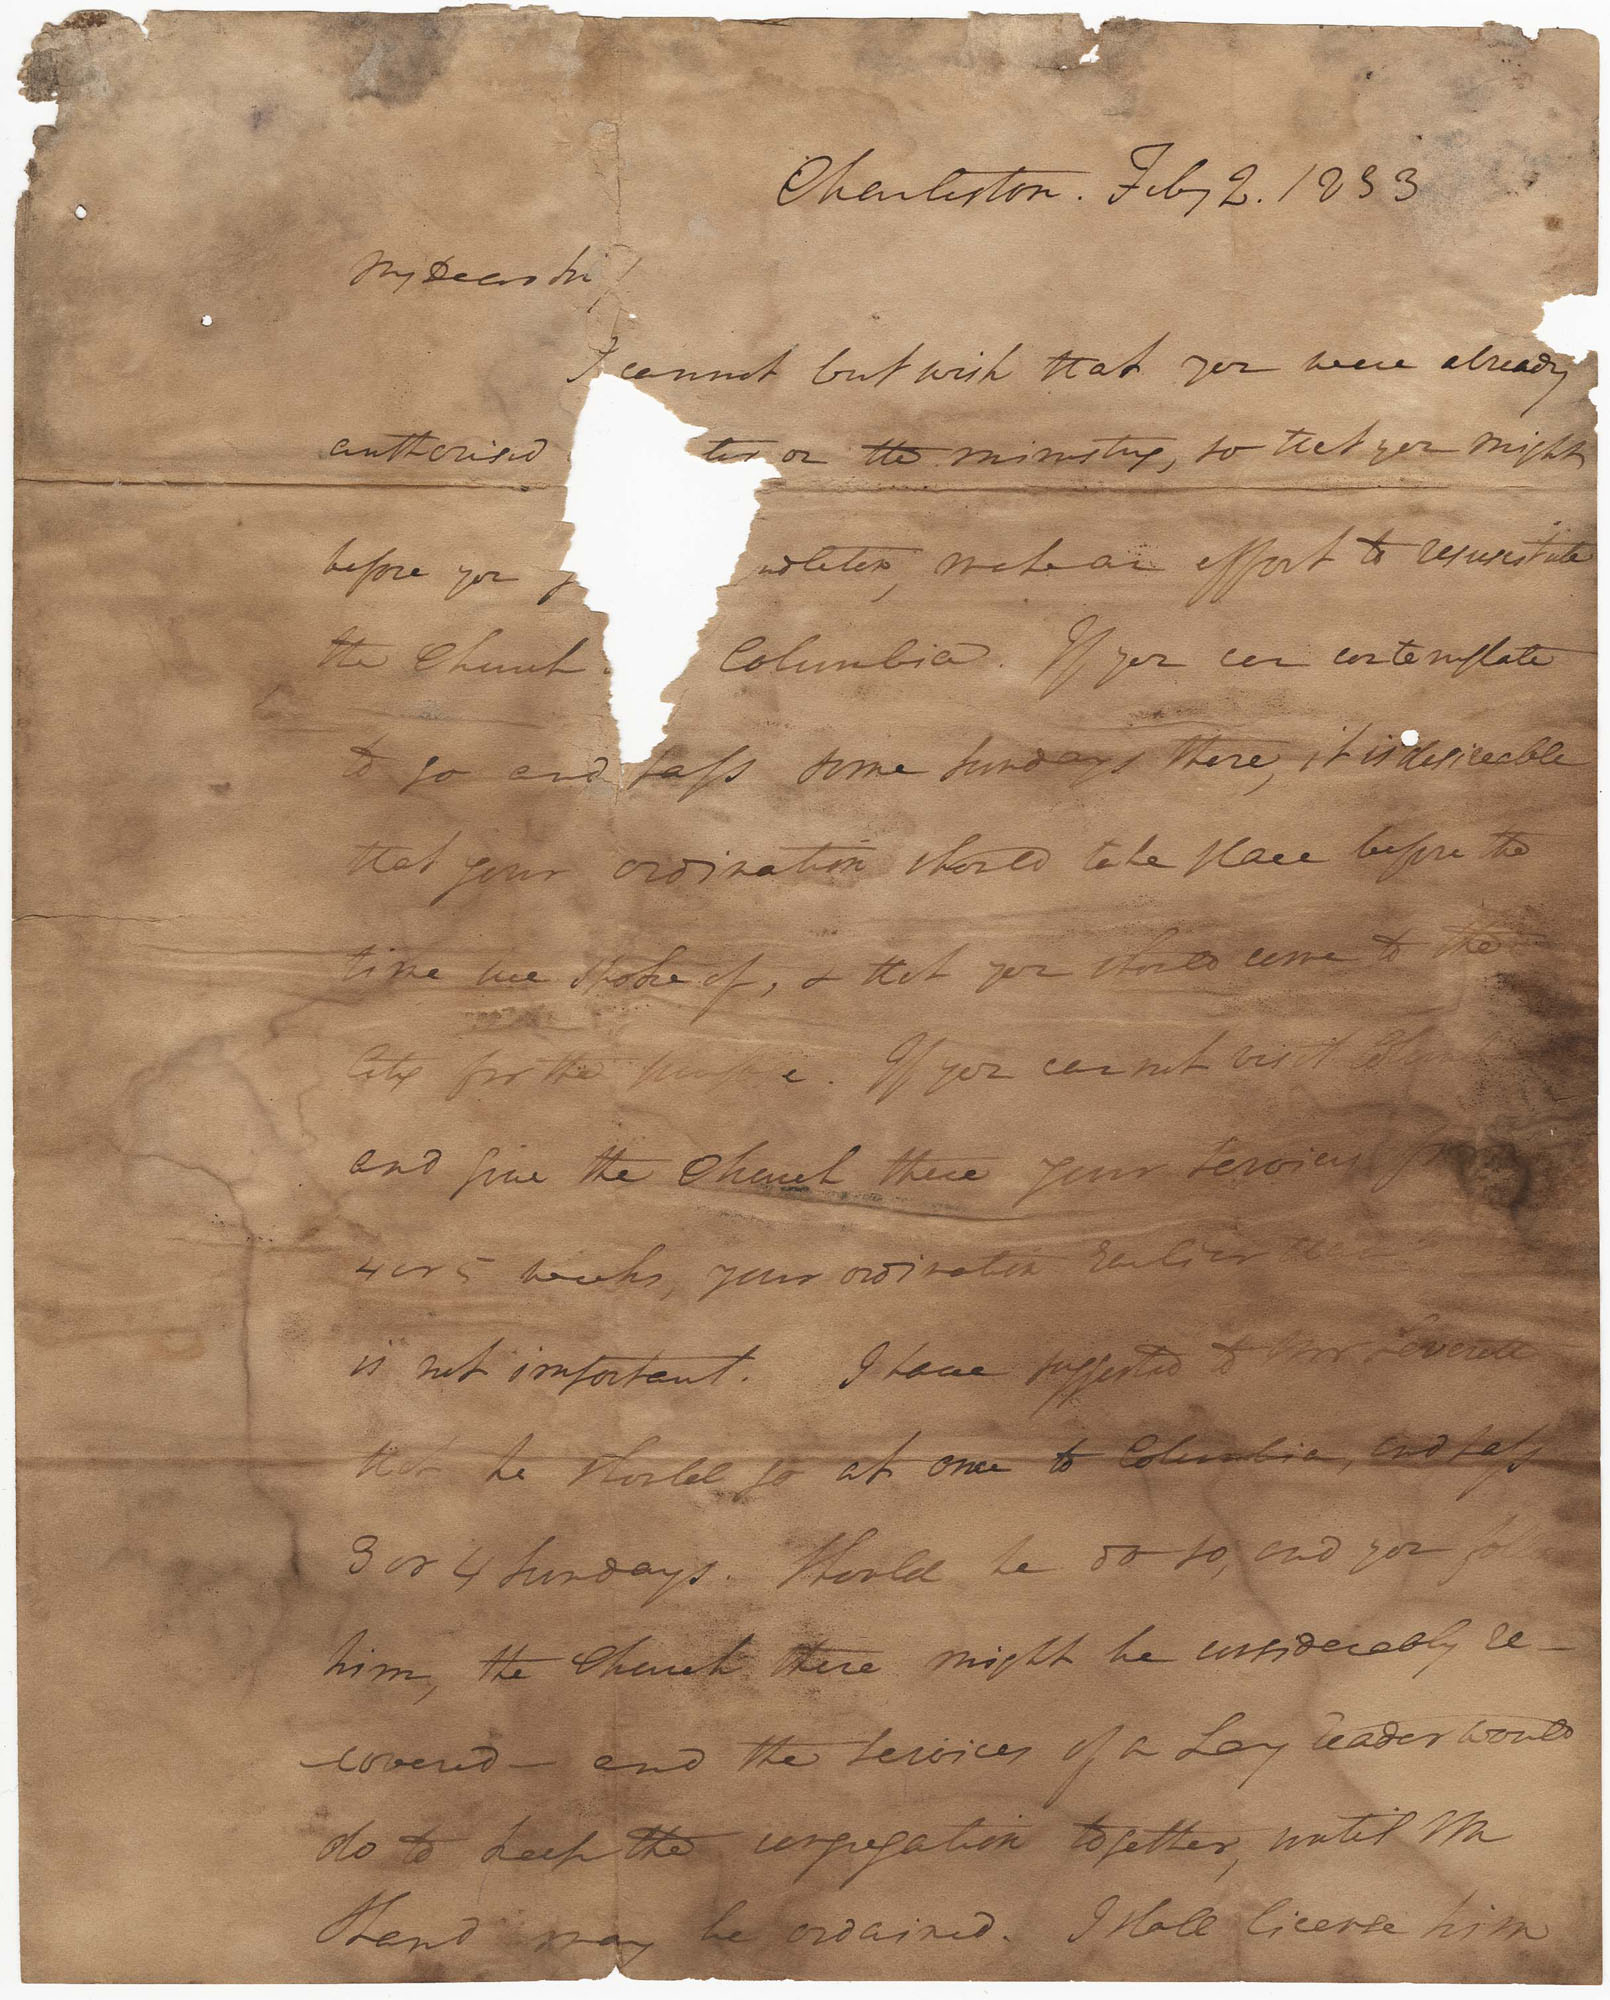 013.  Nathaniel Bowen to William H. W. Barnwell -- February 2, 1833